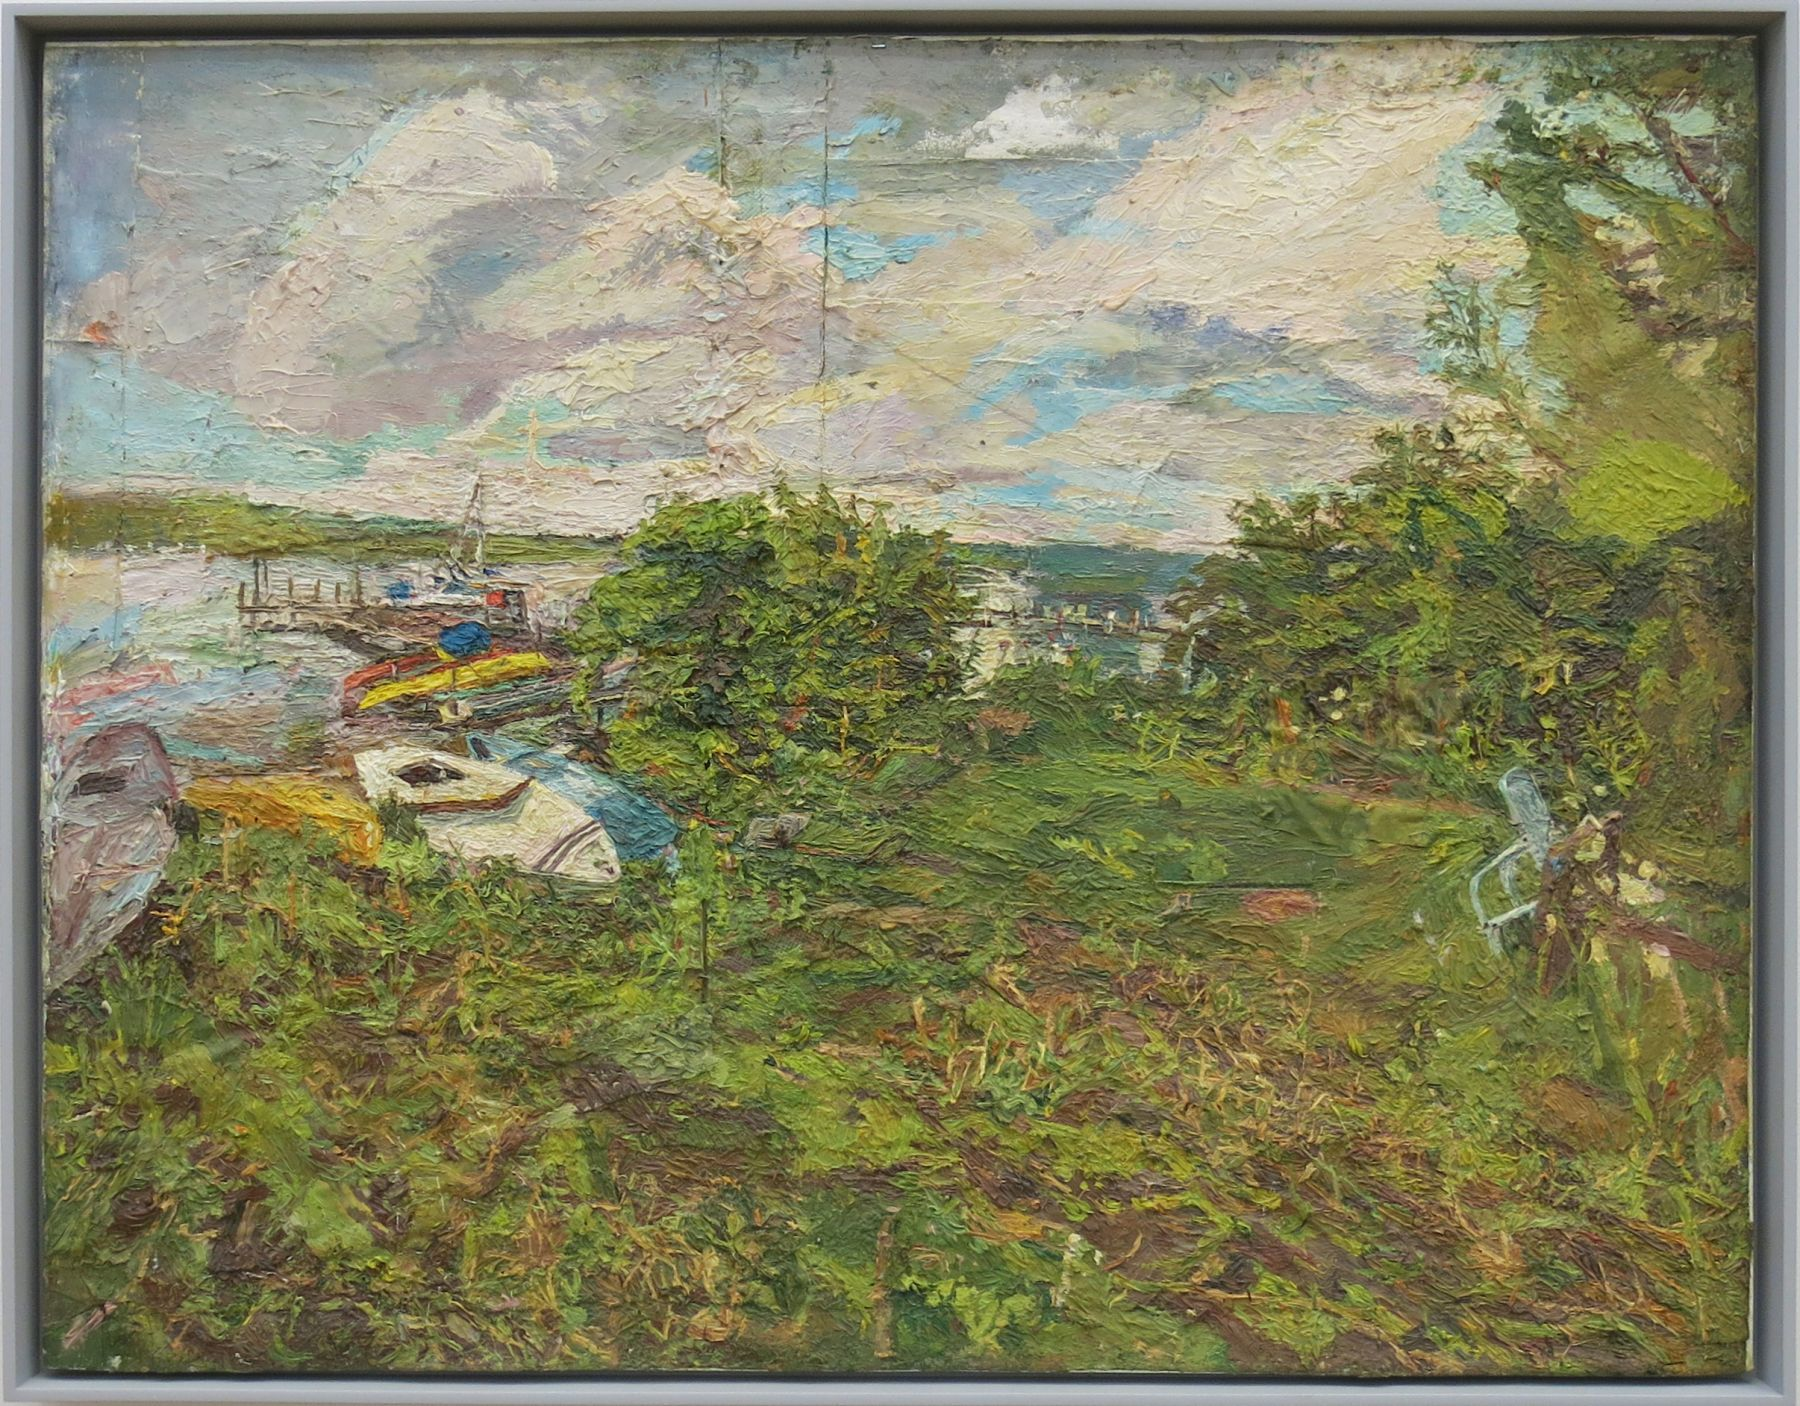 Boat on the Beach, Lake Chautauqua, 2013, Oil on Canvas